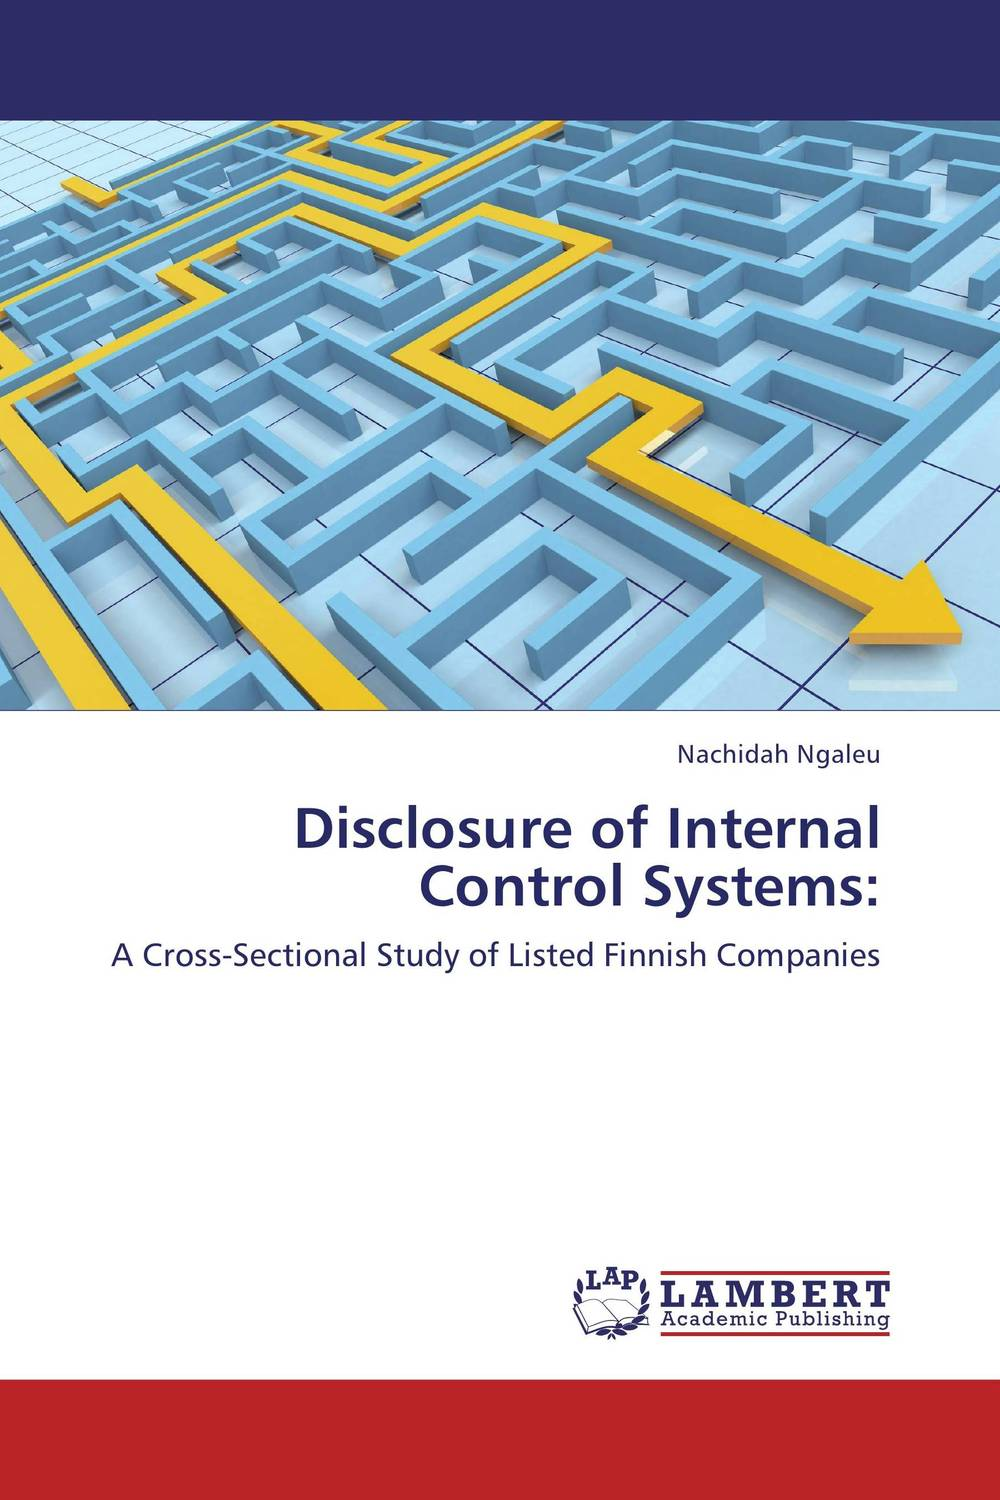 Disclosure of Internal Control Systems: evaluation of the internal control practices